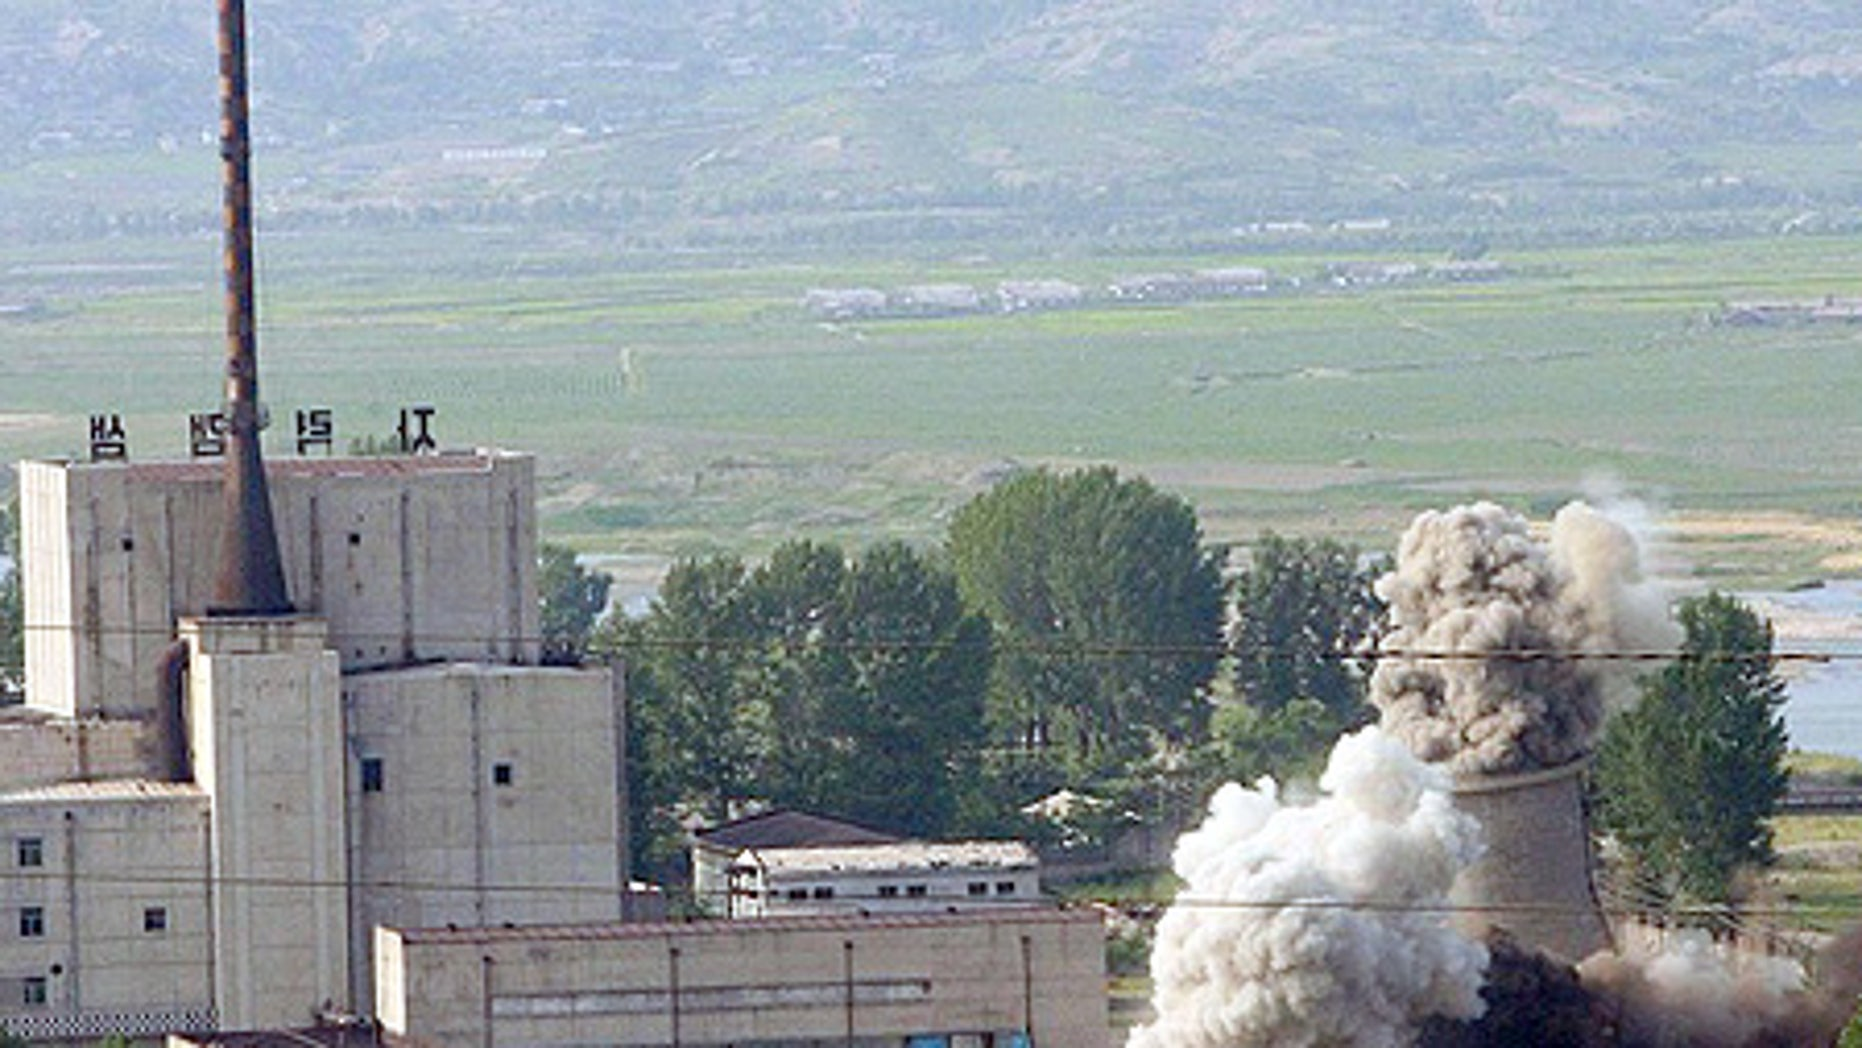 File: The cooling tower of North Korea's Yongbyon nuclear complex, a plutonium-producing reactor, was demolished on June 27, 2008.